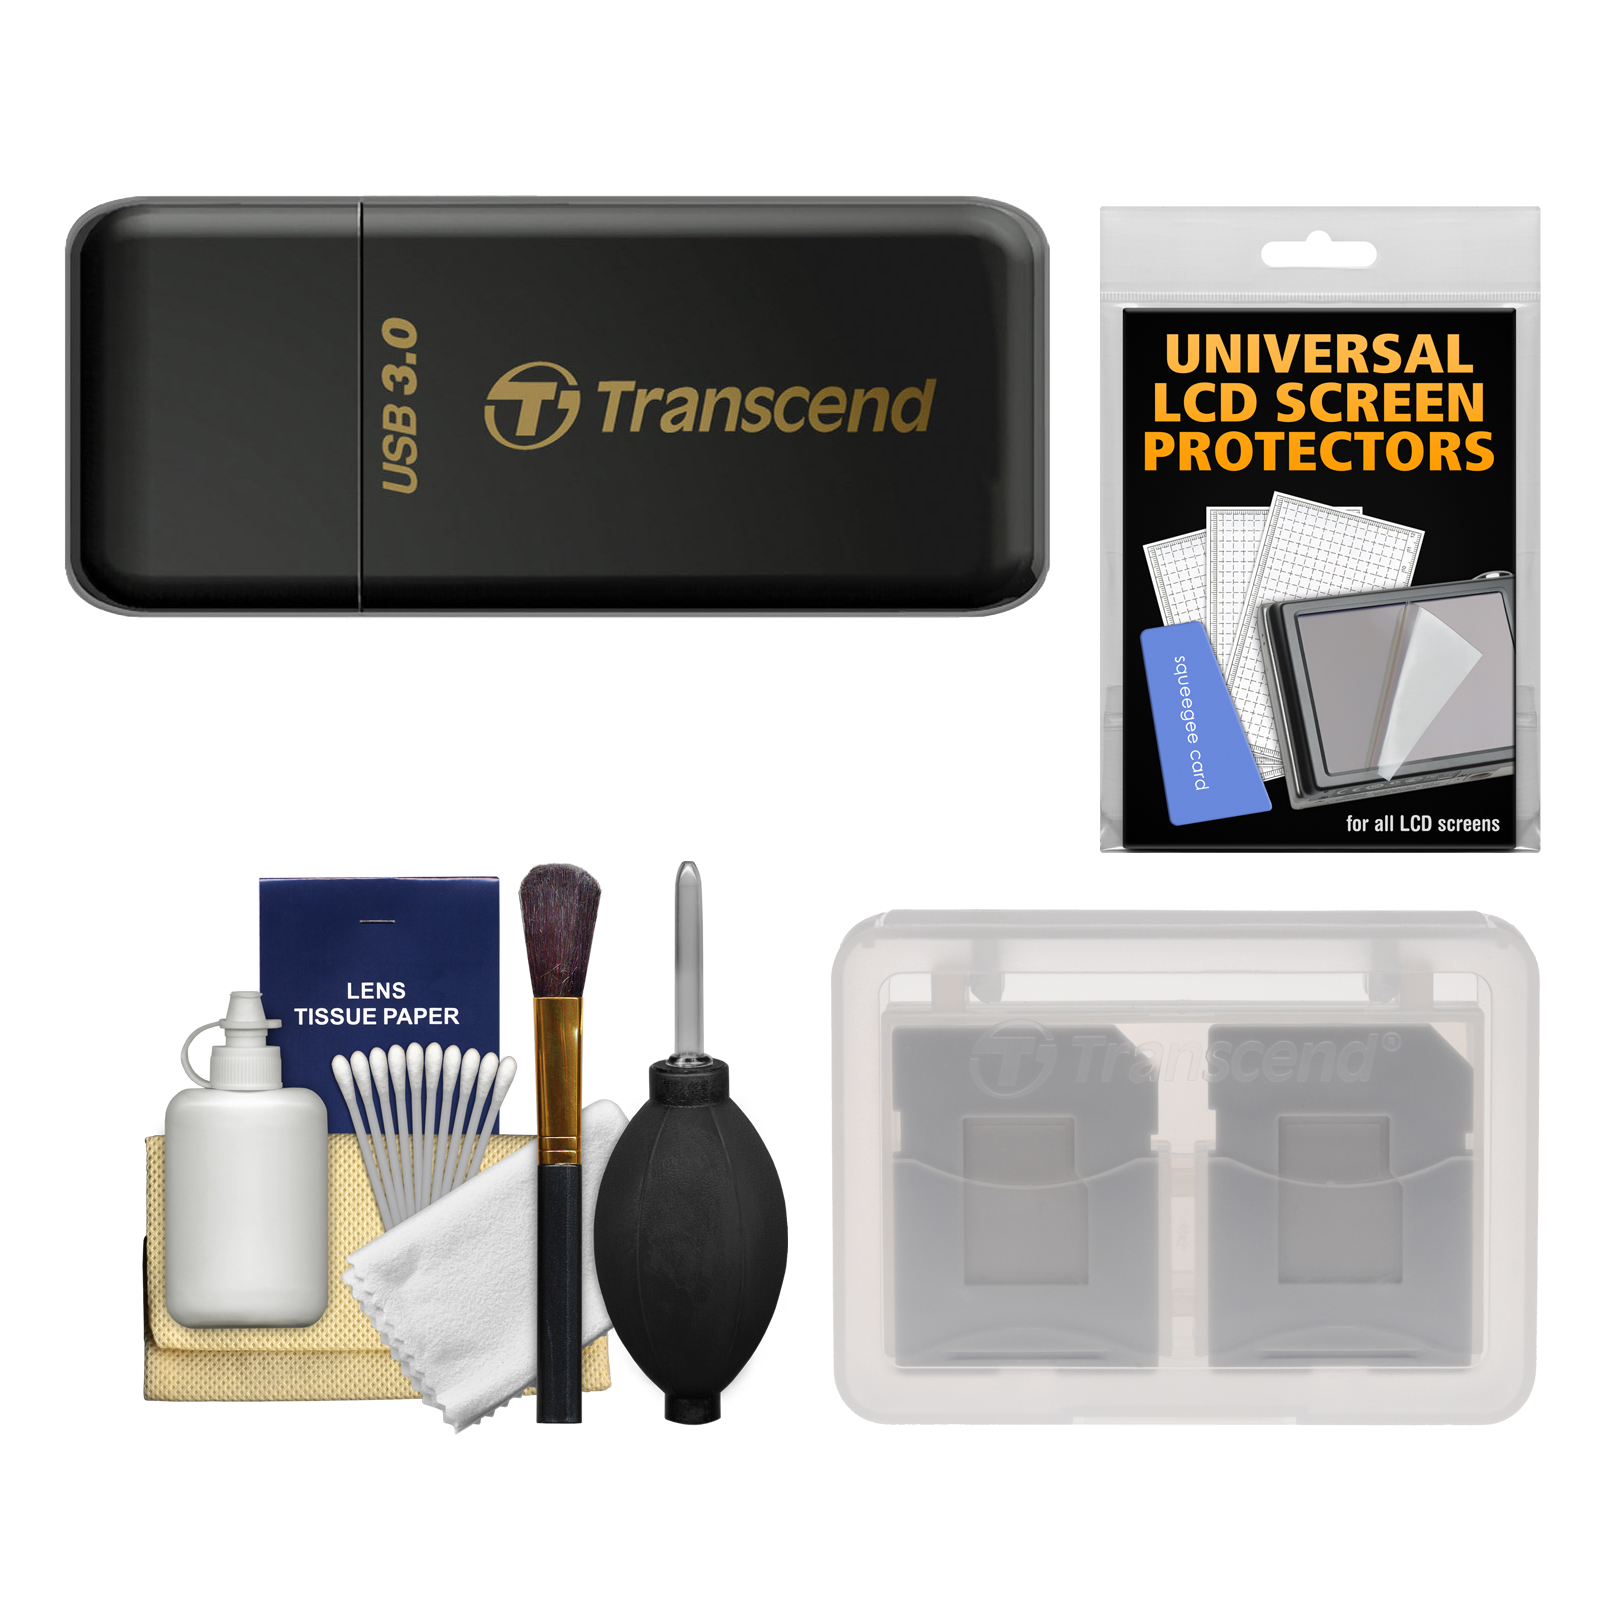 Transcend USB 3.0 SD & microSD Card Reader (SDHC/SDXC/UHS-1) (Black) with Memory Card Case + Cleaning Kit